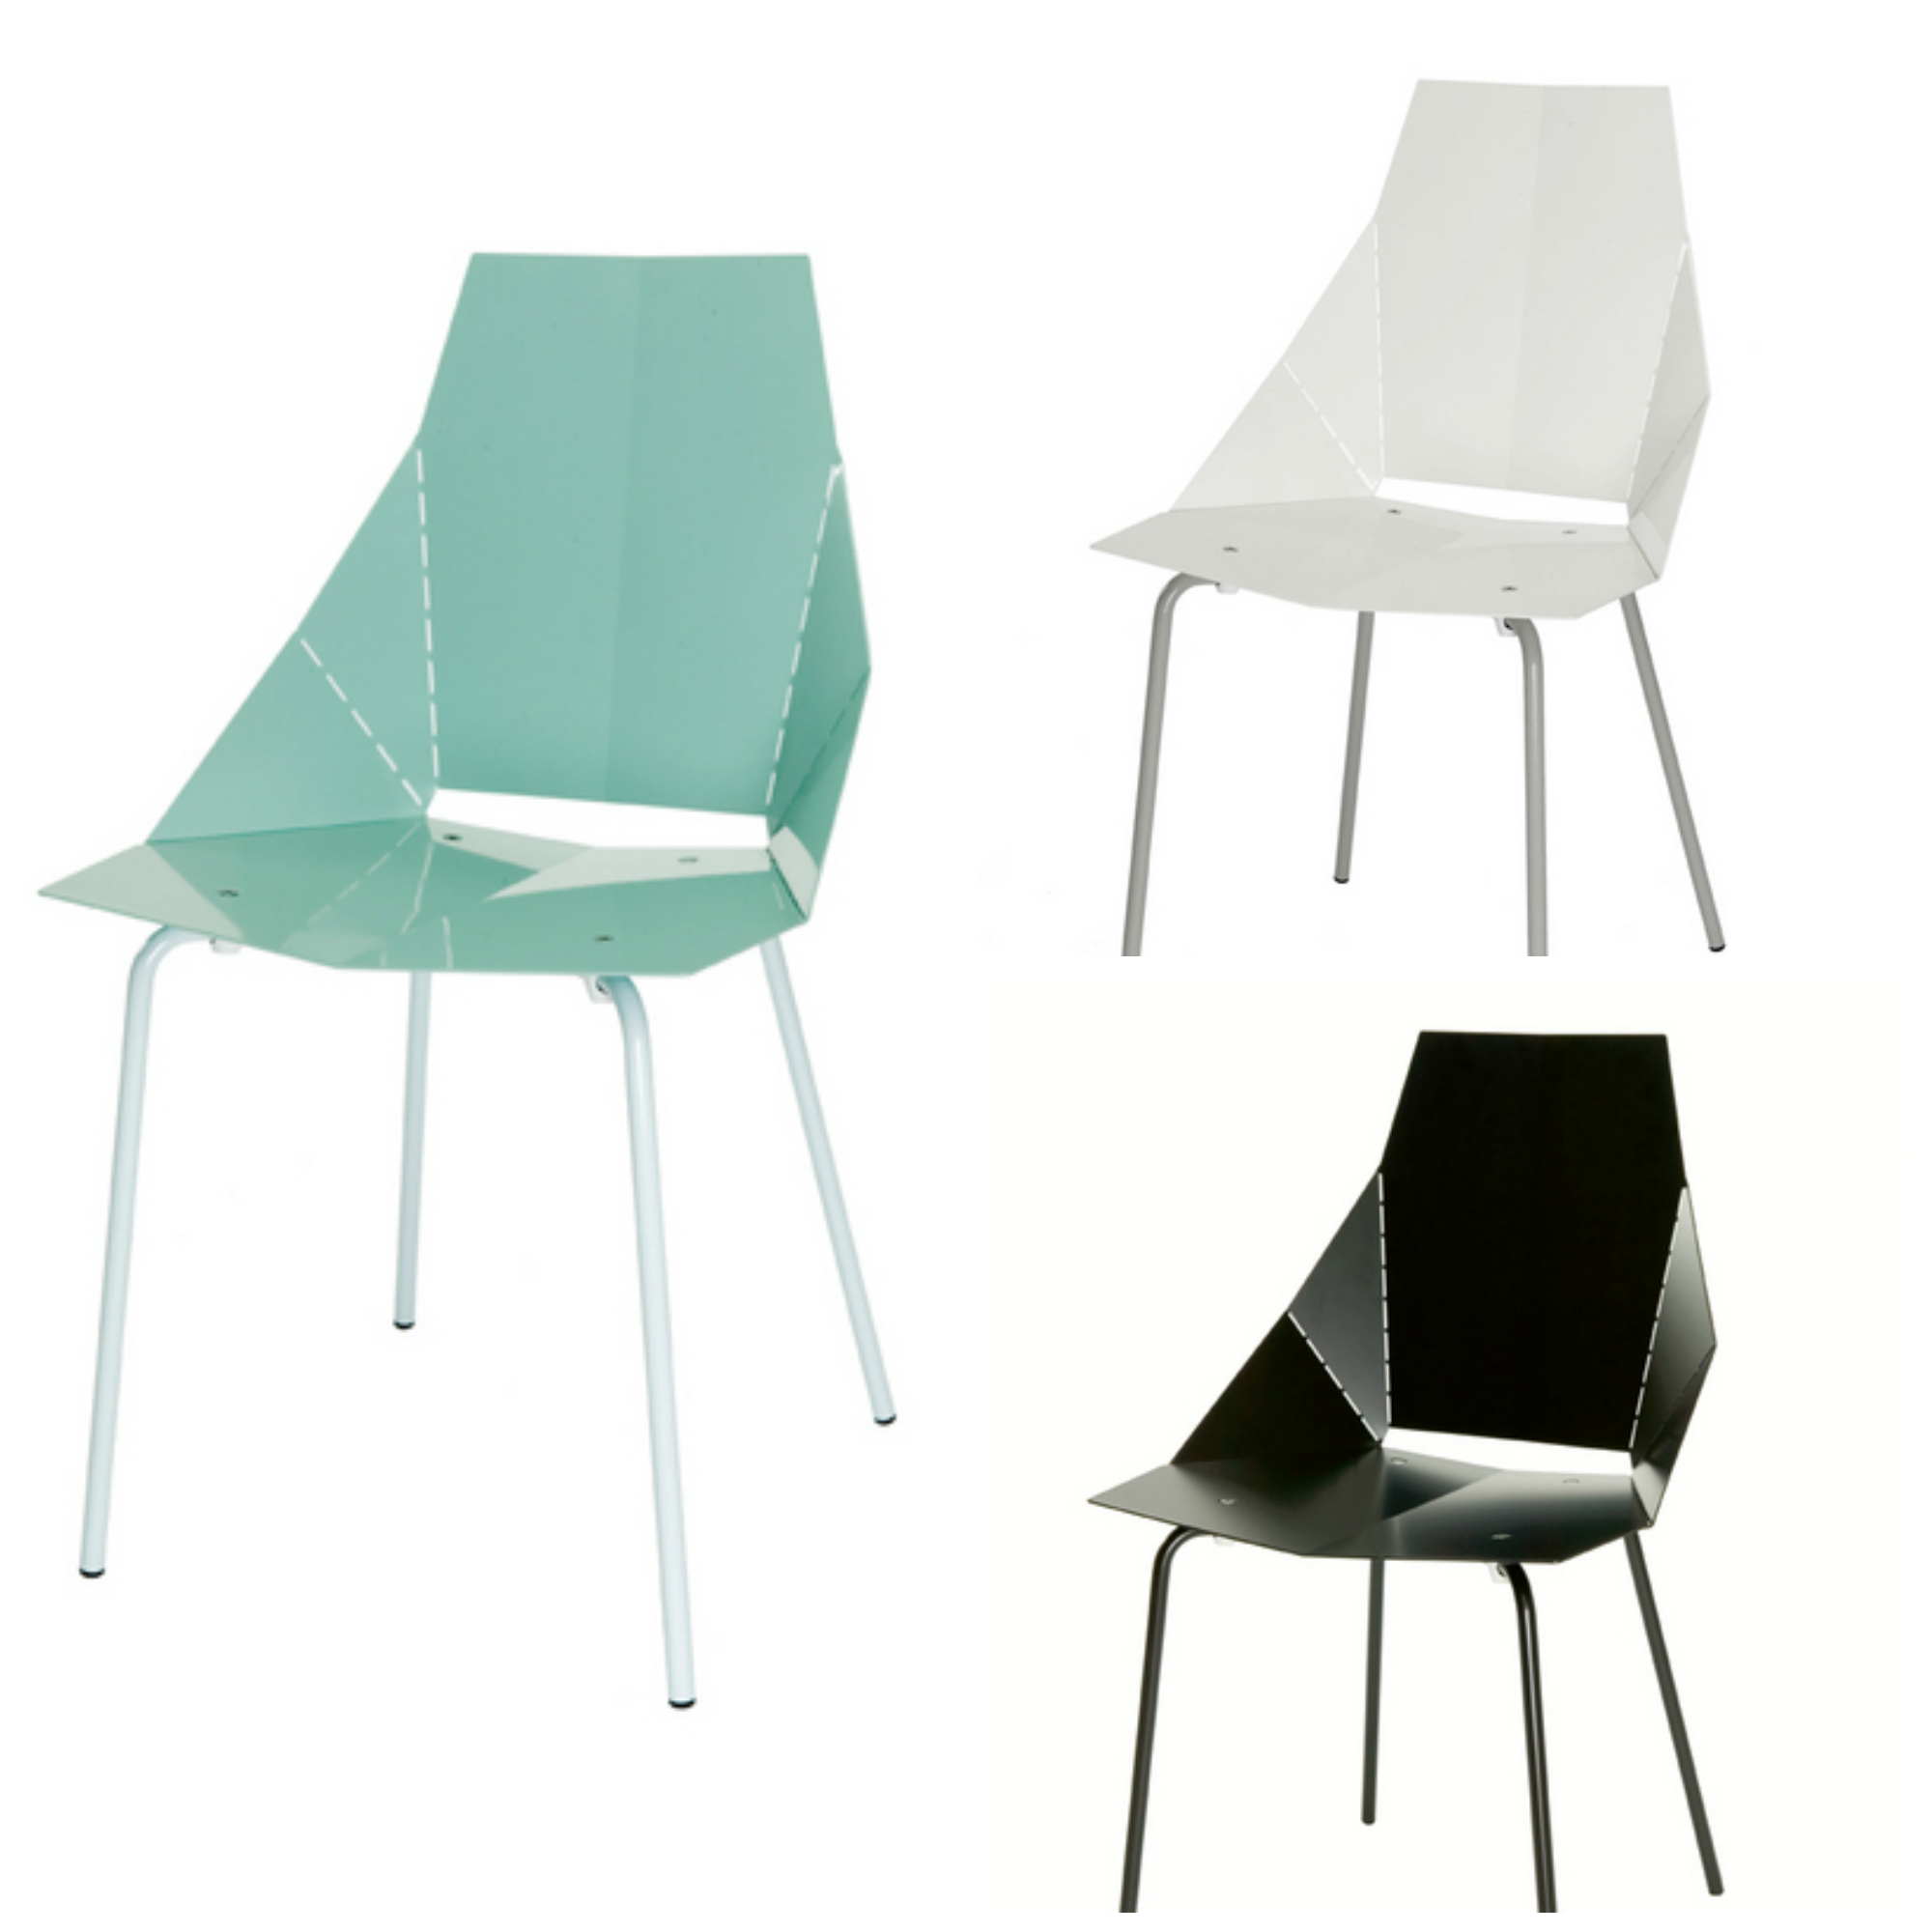 Blu Dot Real Good Chair: Contemporary Flat Pack Furniture ~ Fresh Design  Blog